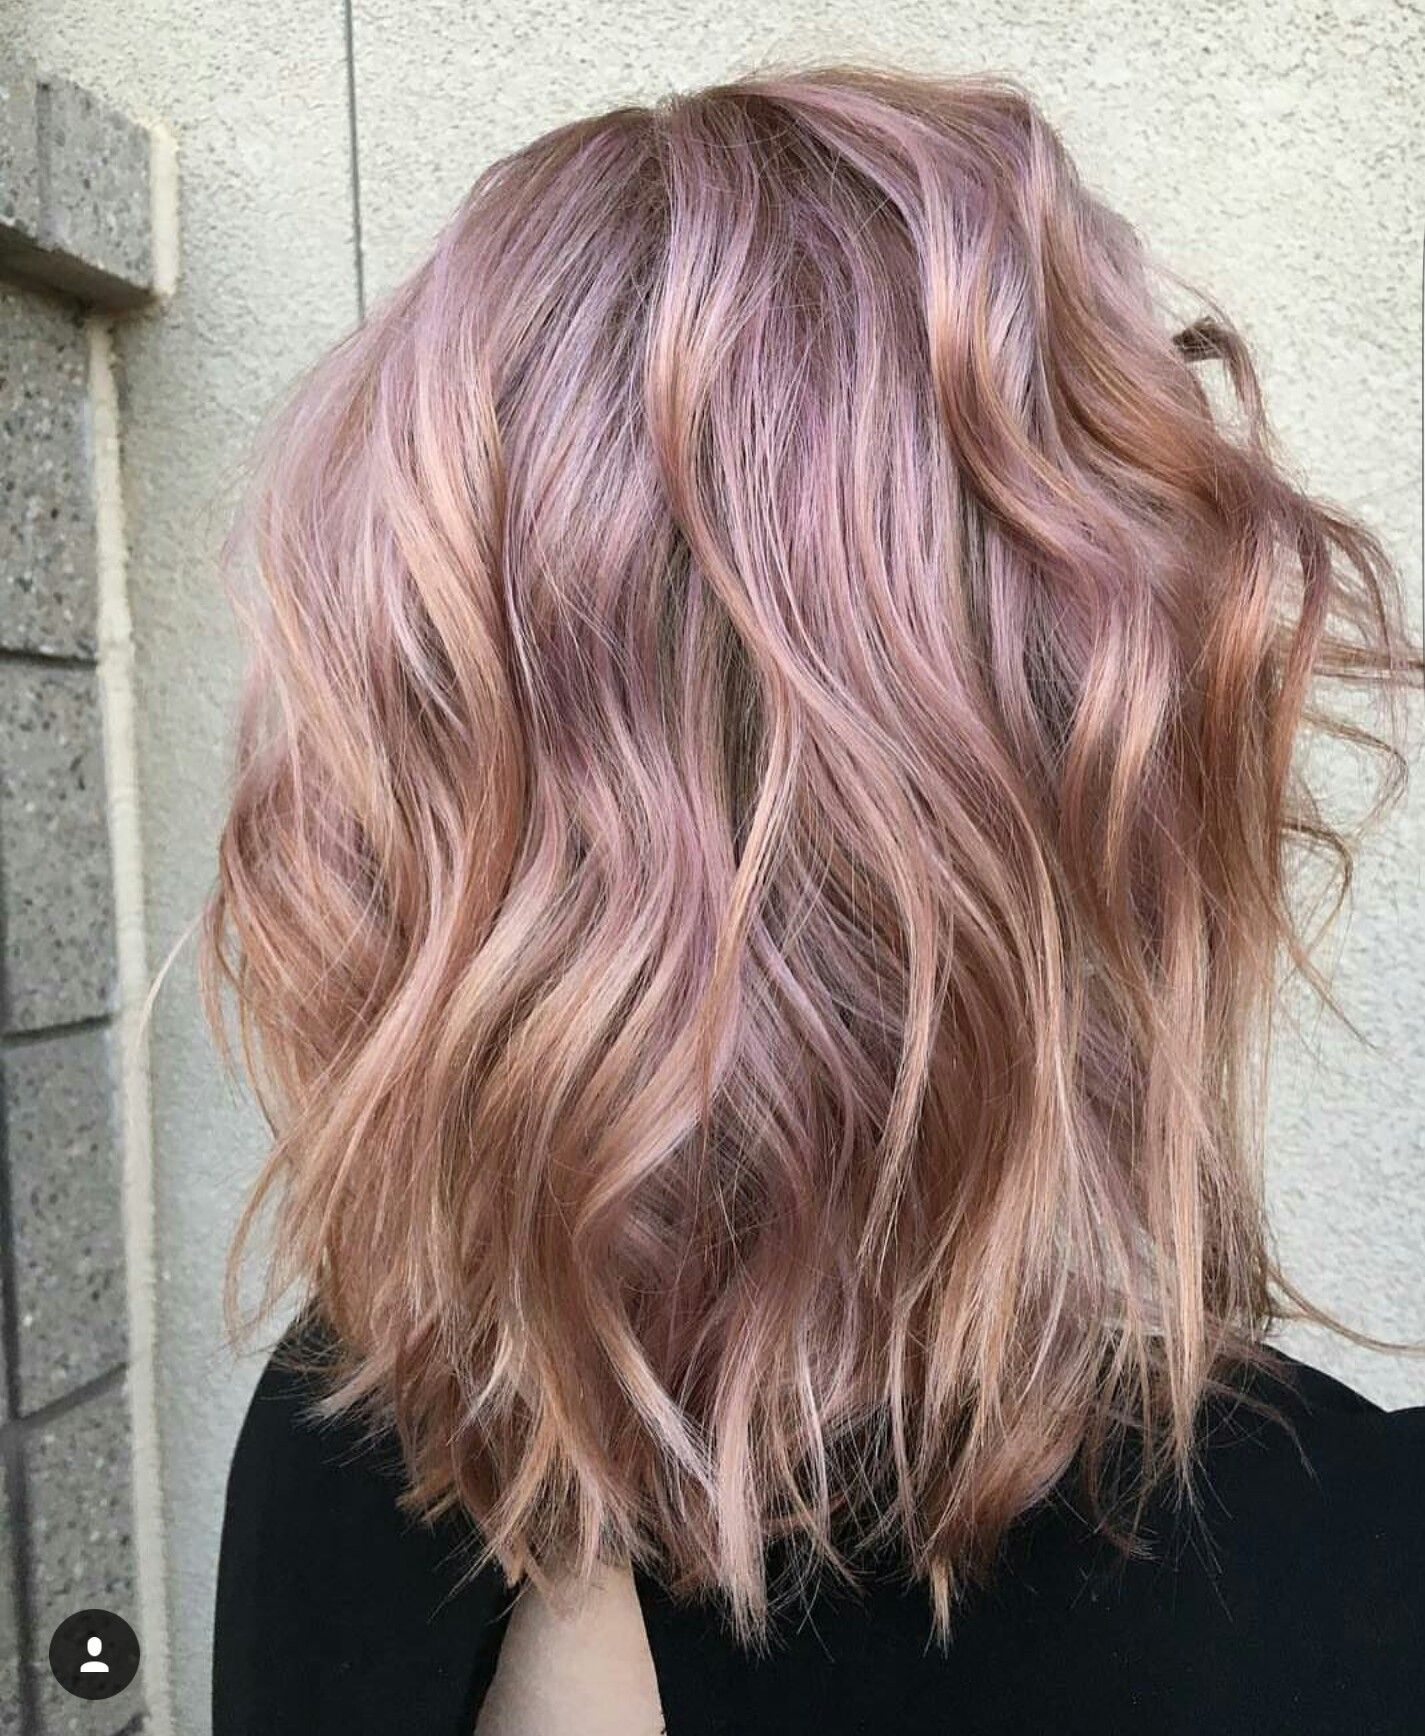 Metallic Rose gold | Hair and Beauty in 2019 | Hair, Gold ...